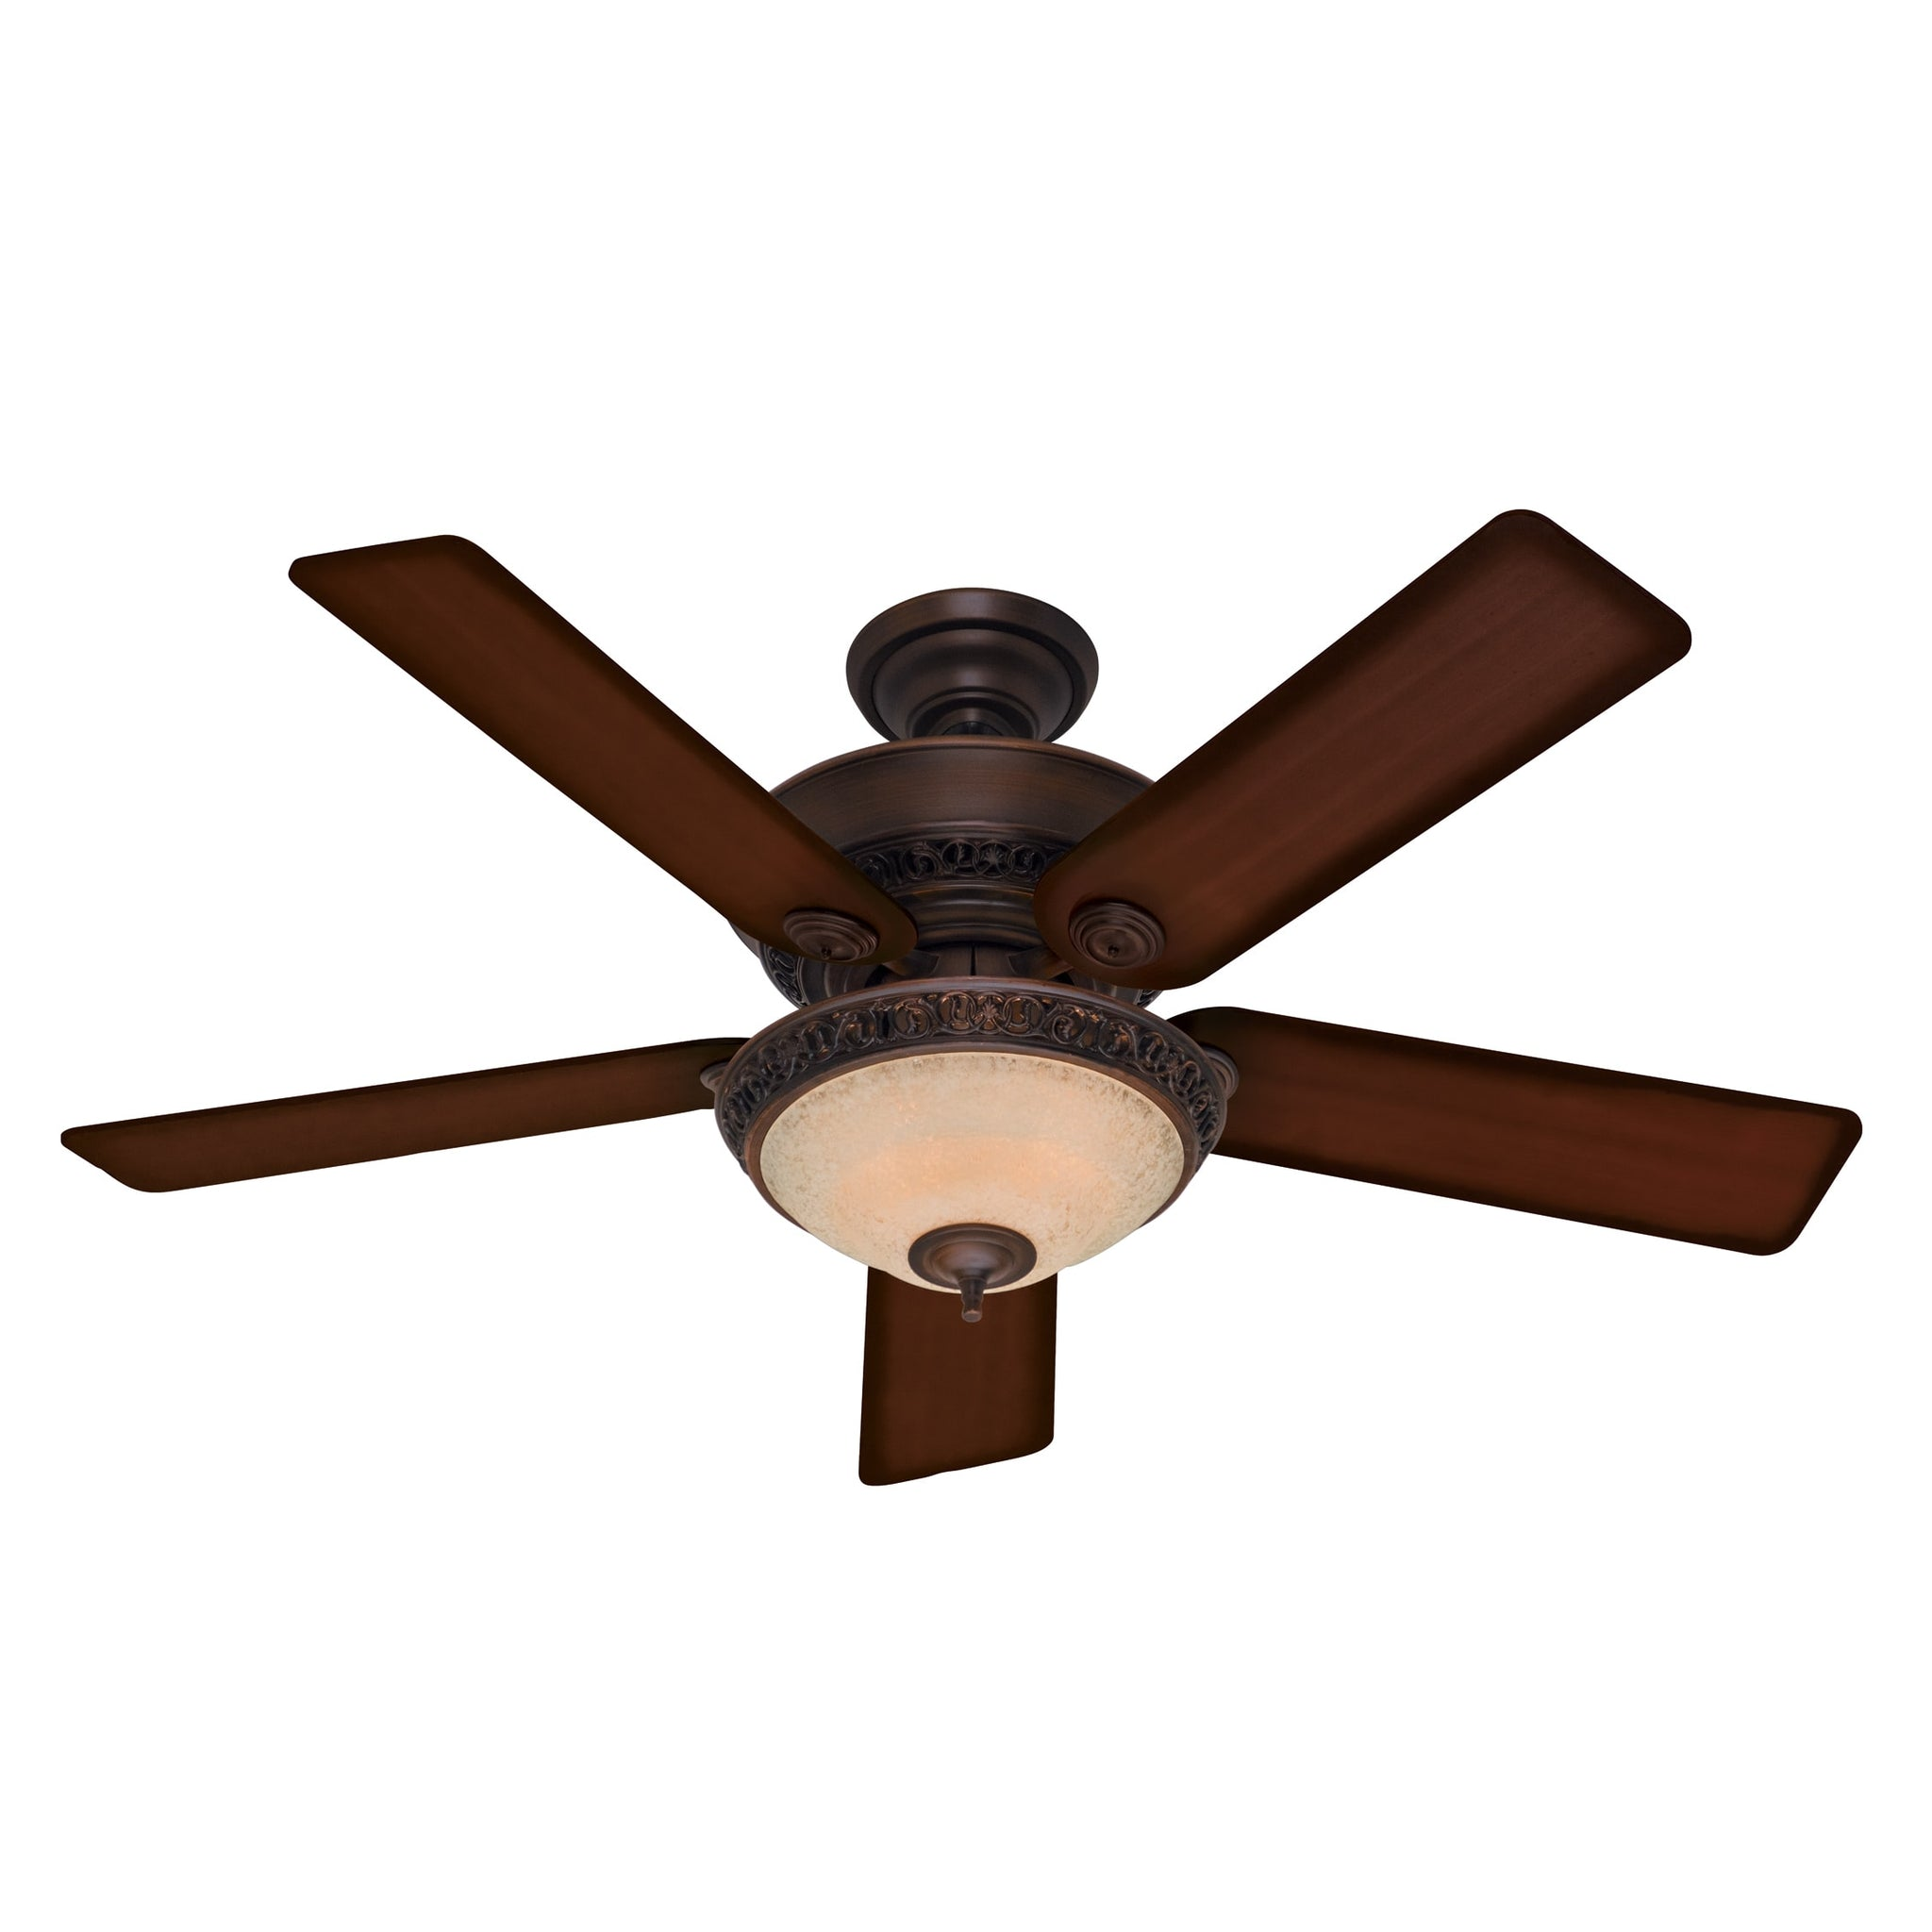 Cocoa Finish 52-Inch Ceiling Fan with Five Aged Barnwood Cherry Walnut Blades